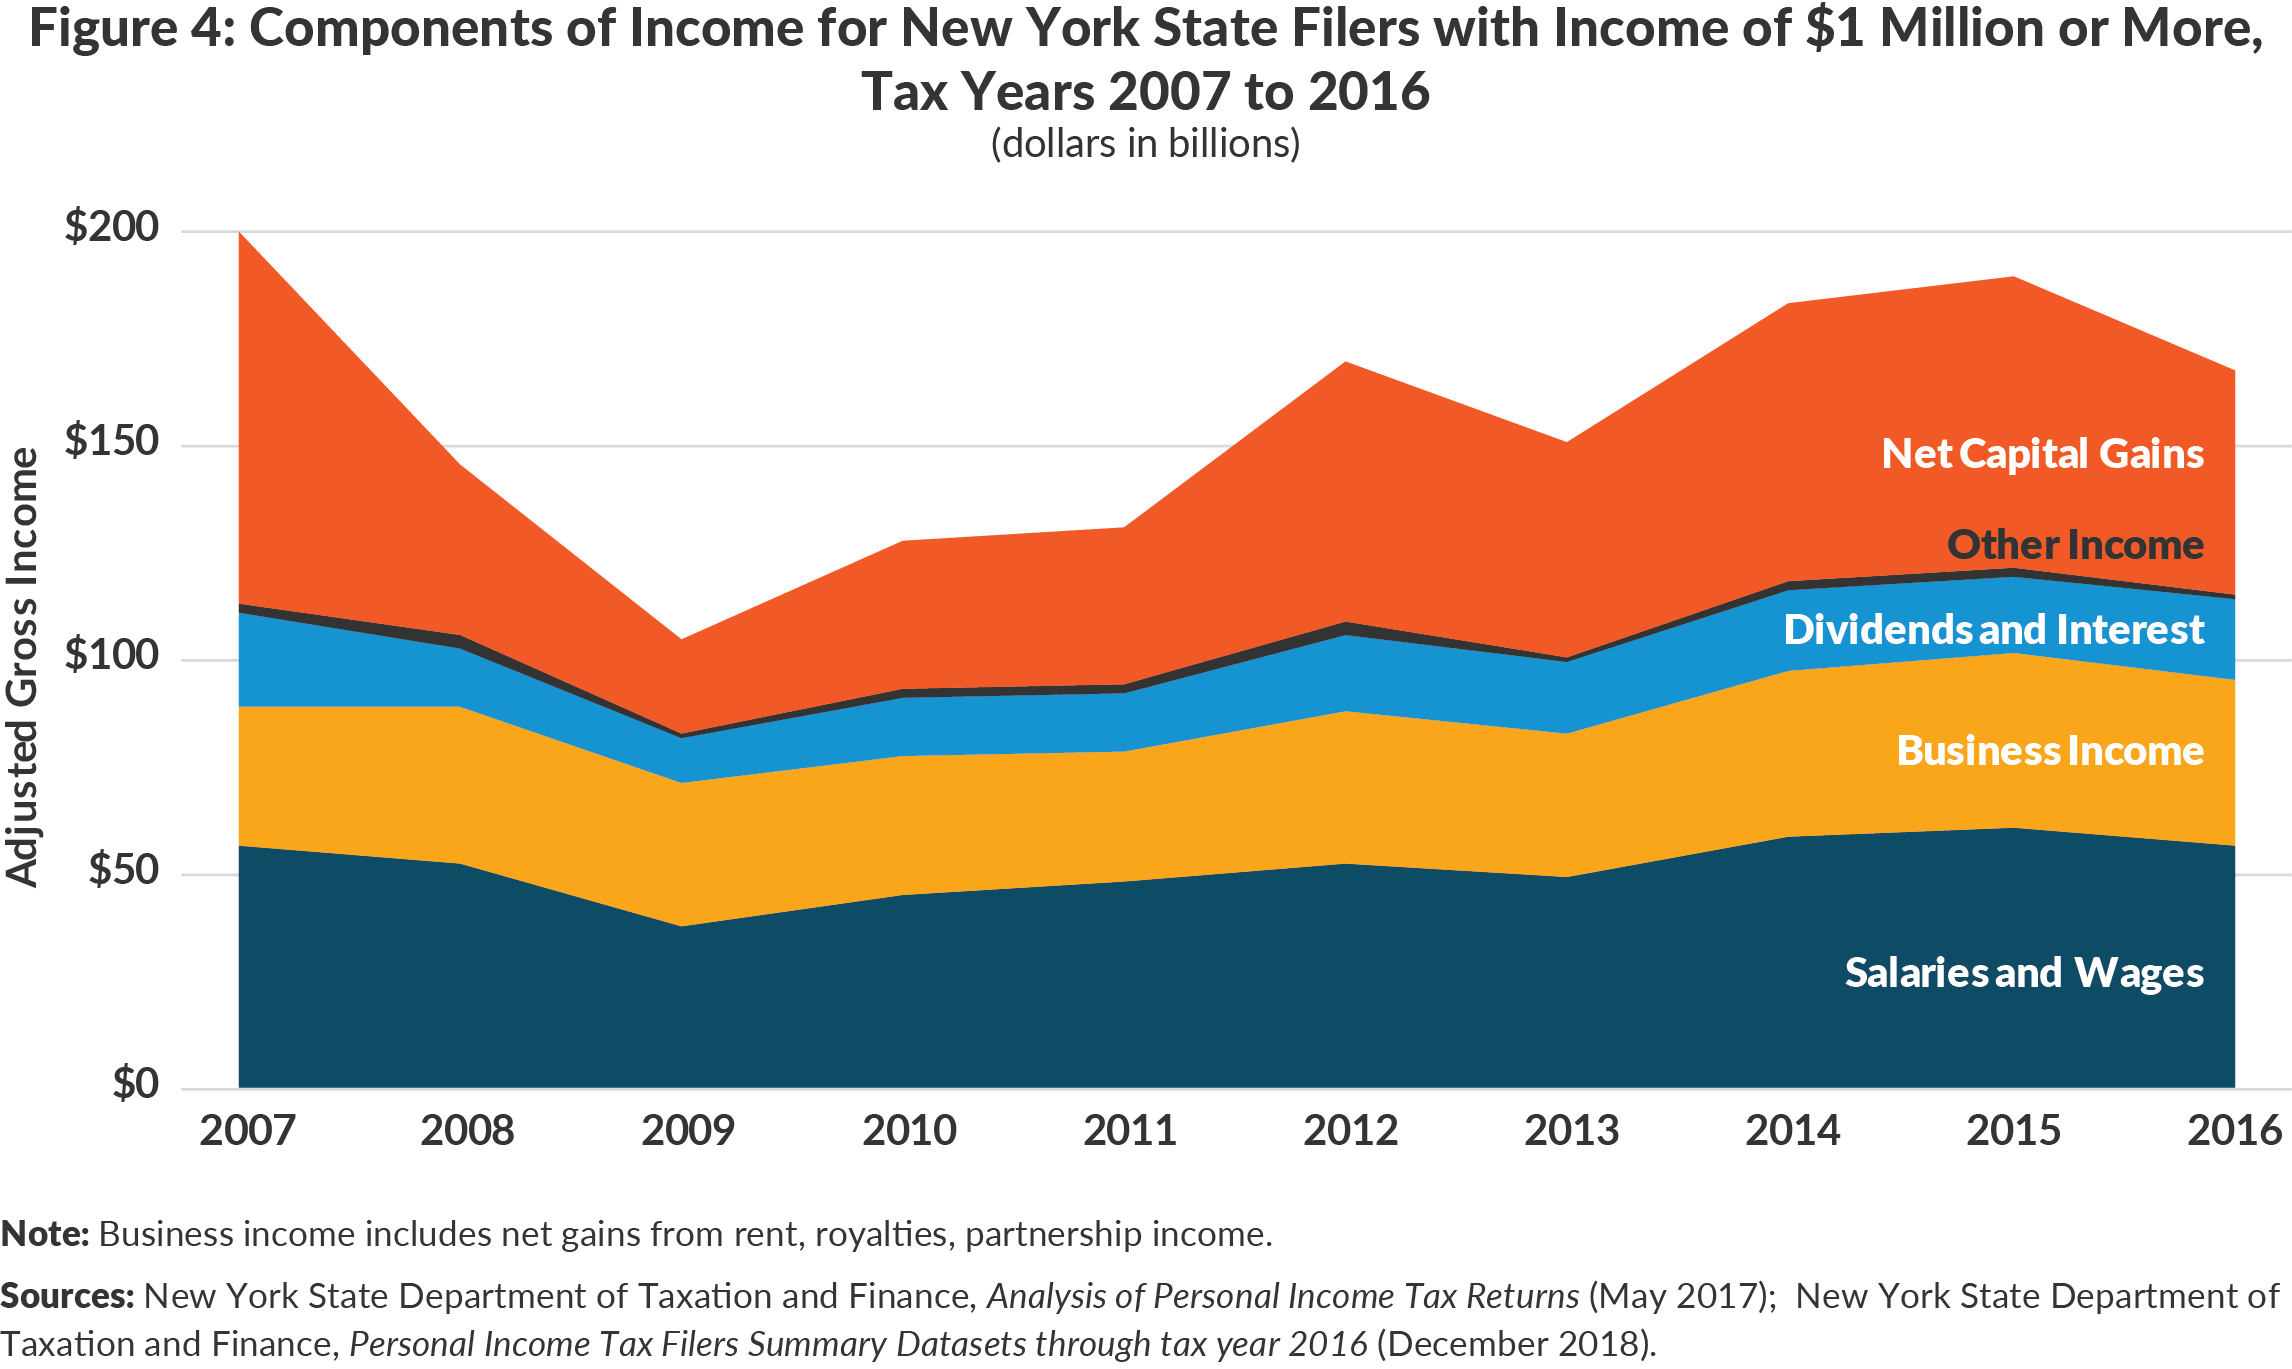 Figure 4: Components of Income for New York State Filers with Income Over $1 Million,Tax Years 2007 to 2016